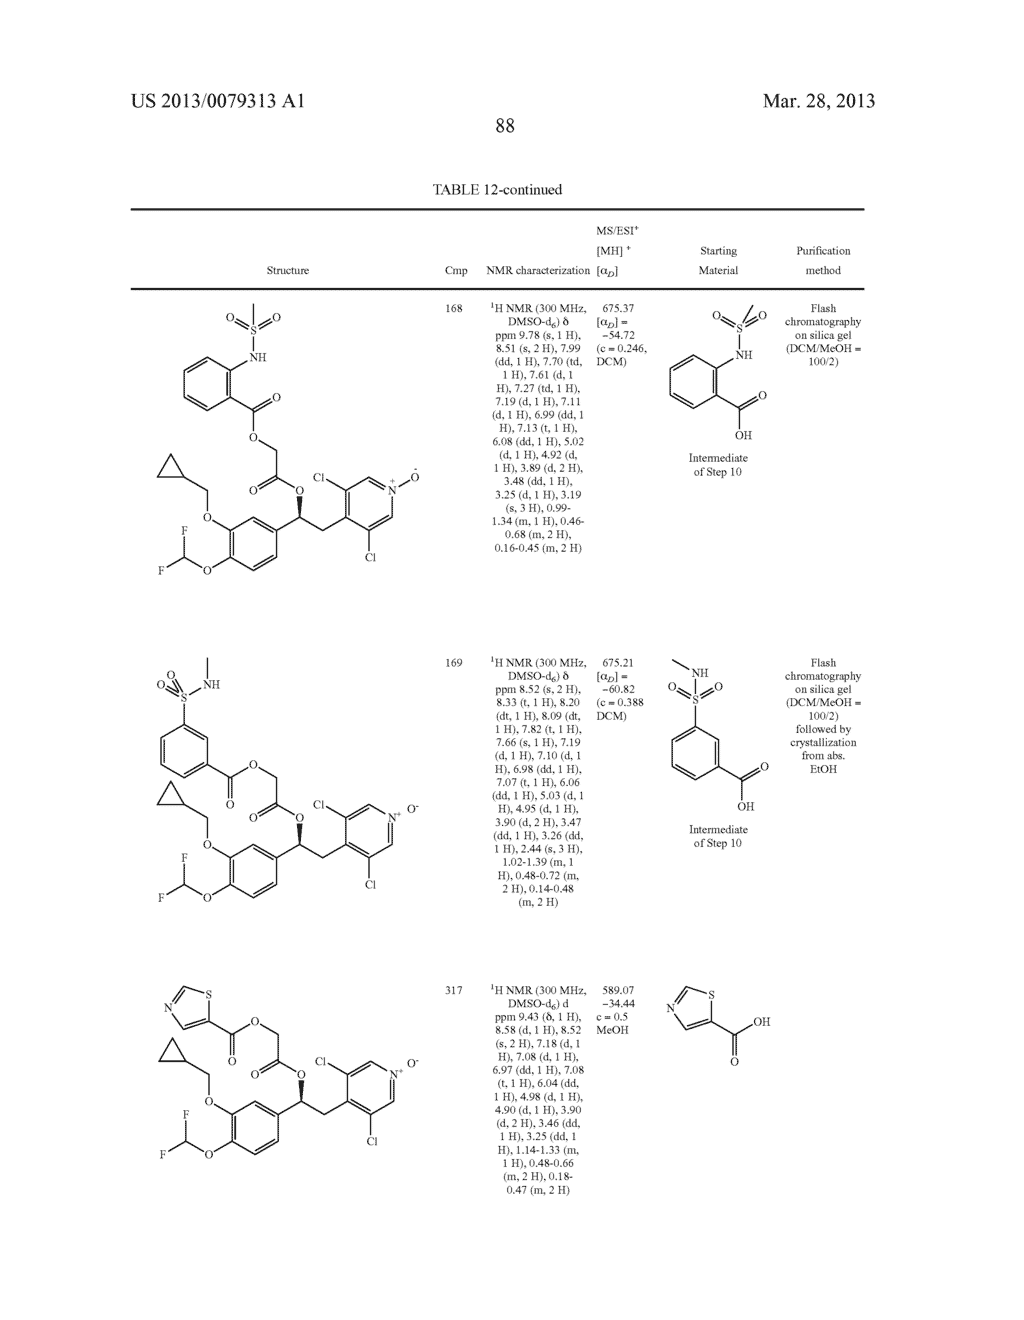 DERIVATIVES OF 1-PHENYL-2-PYRIDINYL ALKYL ALCOHOLS AS PHOSPHODIESTERASE     INHIBITORS - diagram, schematic, and image 89